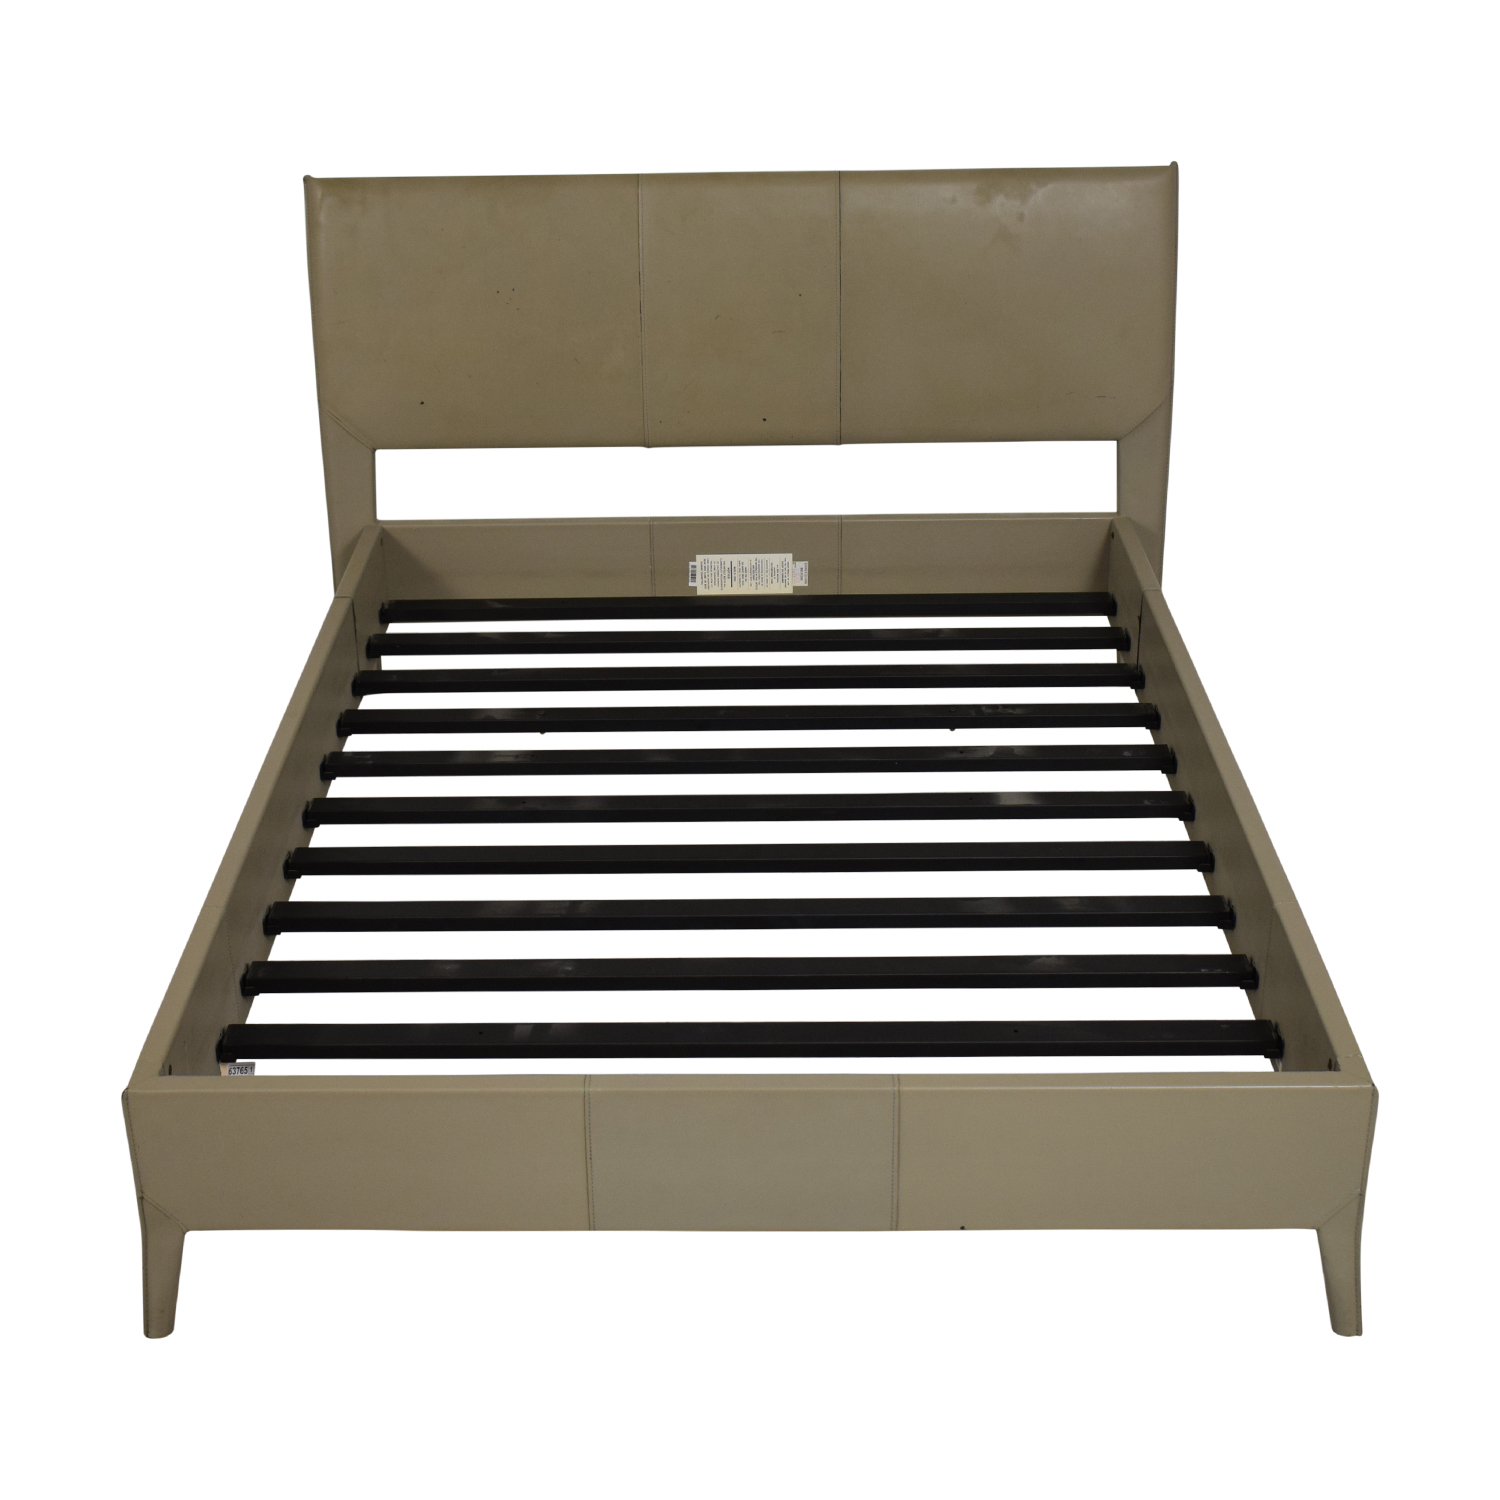 Crate & Barrel Crate & Barrel Grey Full Bed